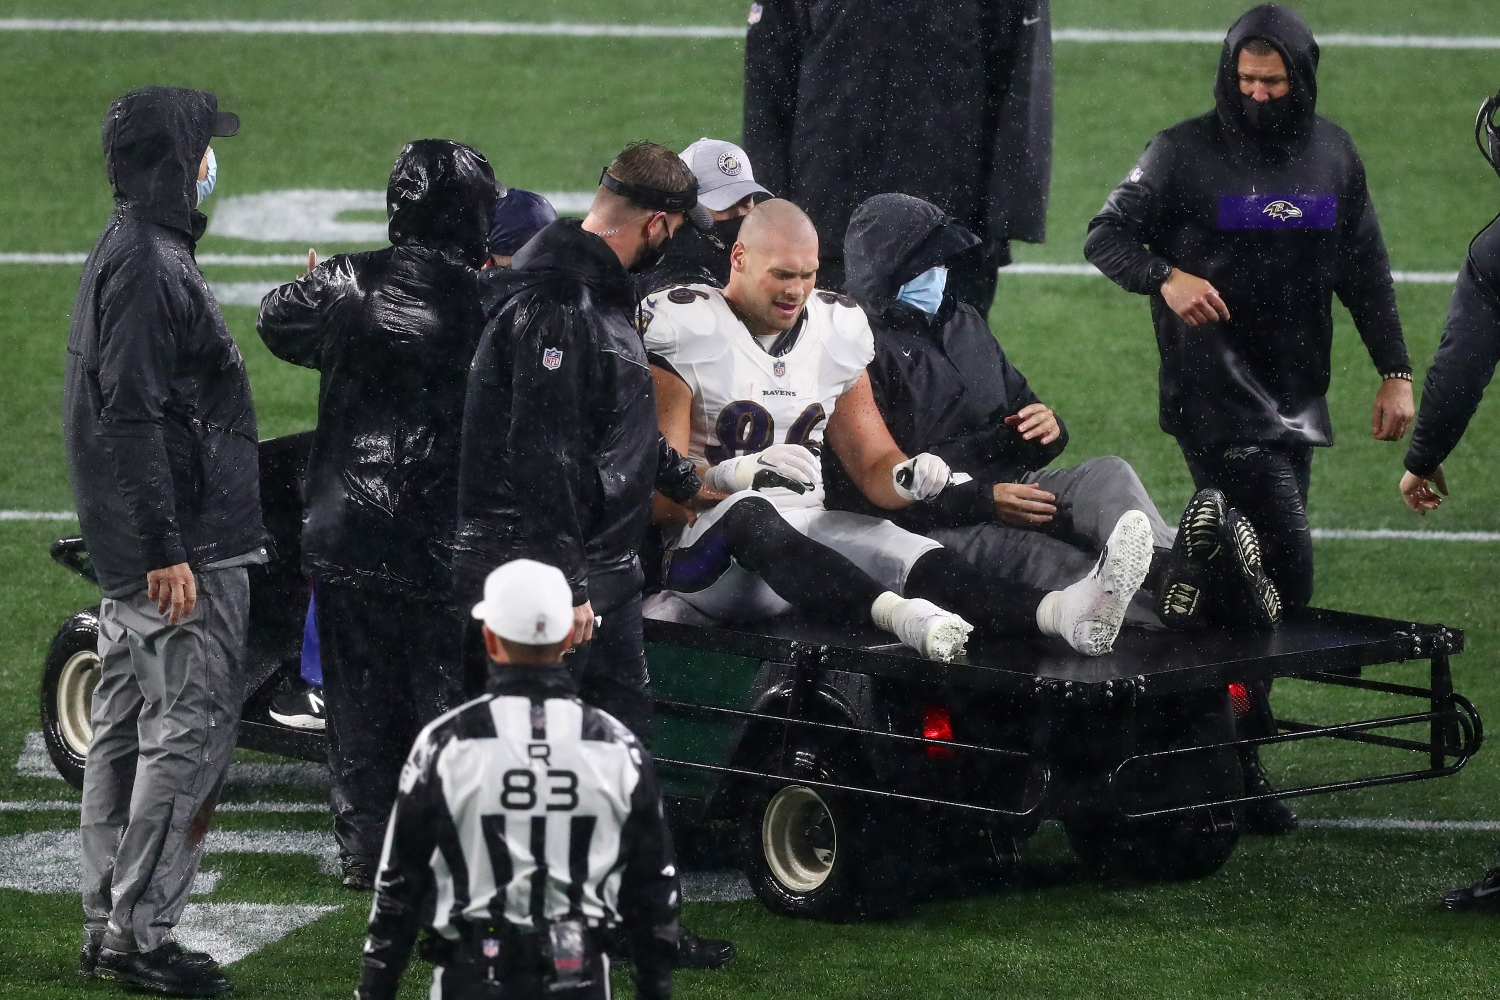 Ravens tight end Nick Boyle suffered a season-ending injury against the Patriots.